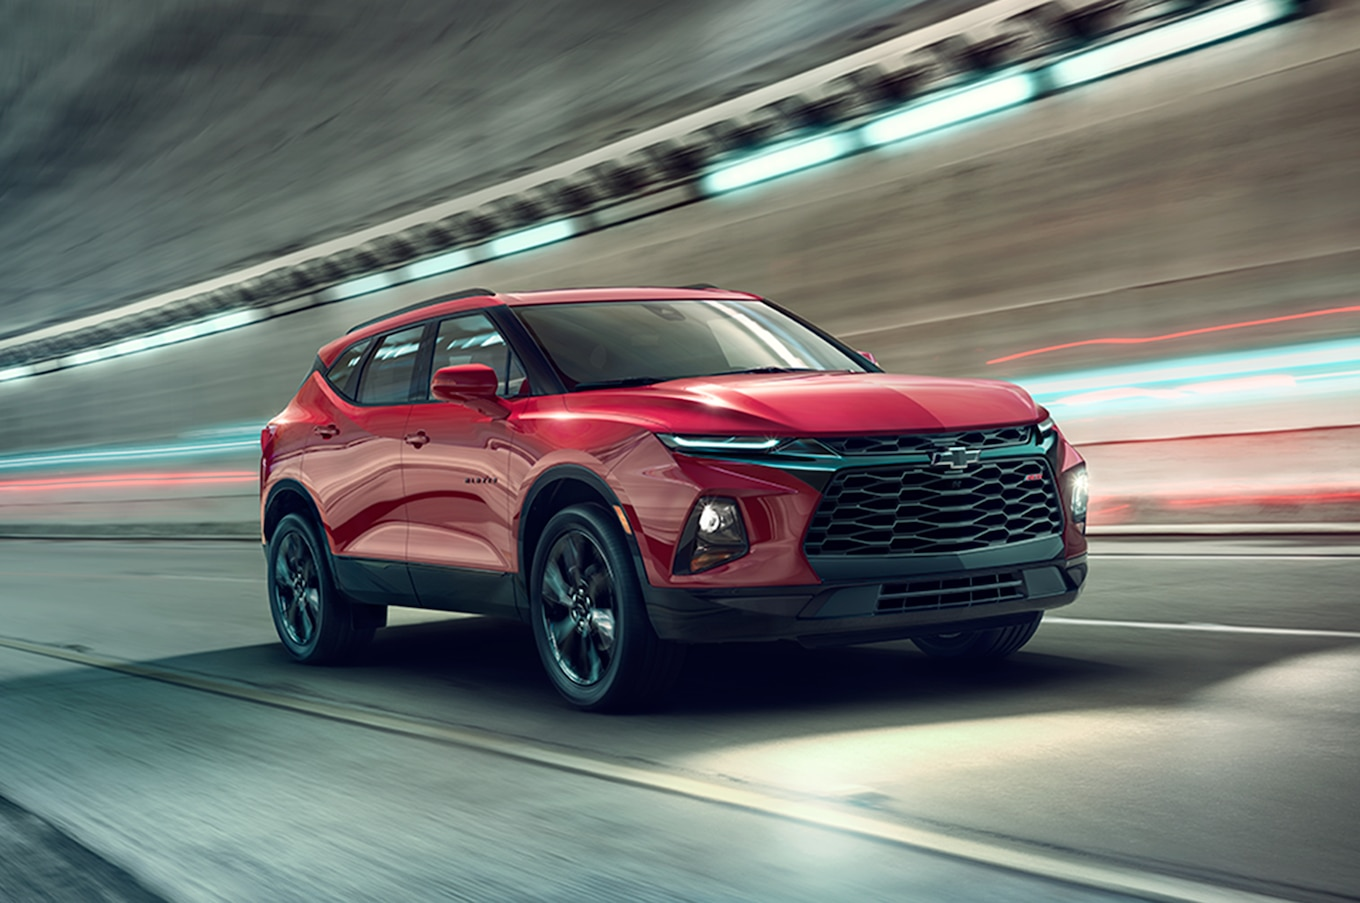 hight resolution of 2019 chevrolet blazer first look reinventing the suv for a cuv world motor trend